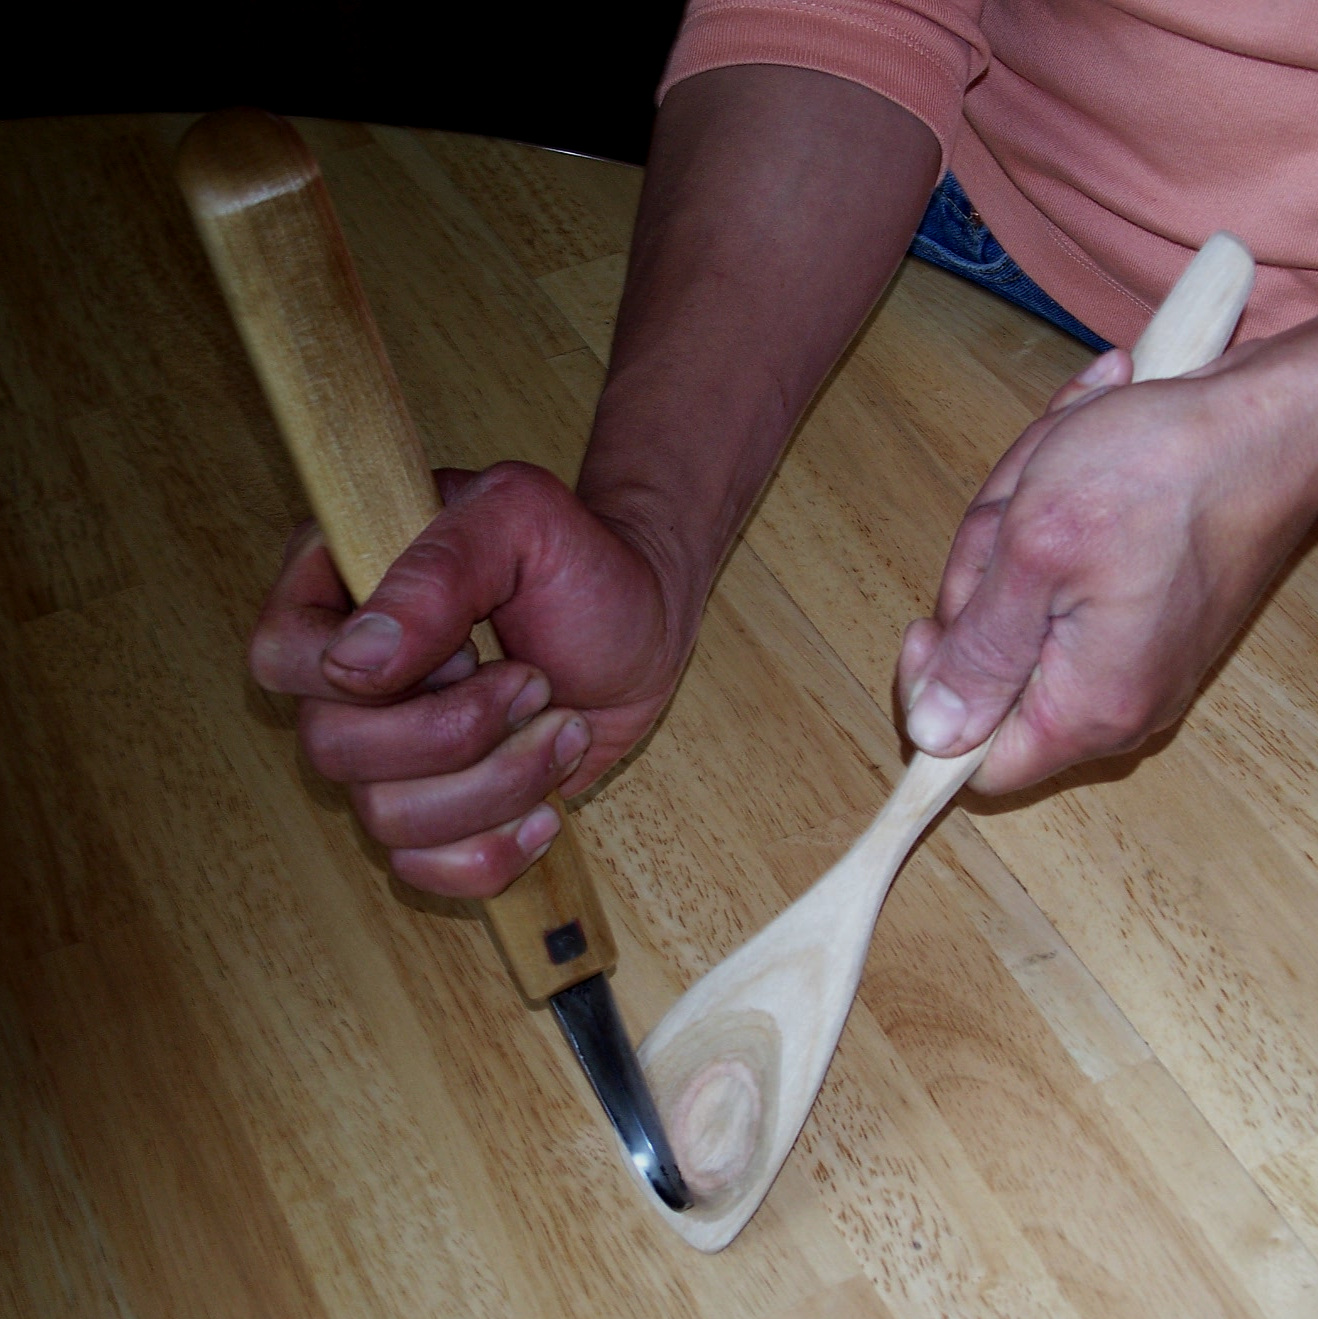 Holding a carving hook knife